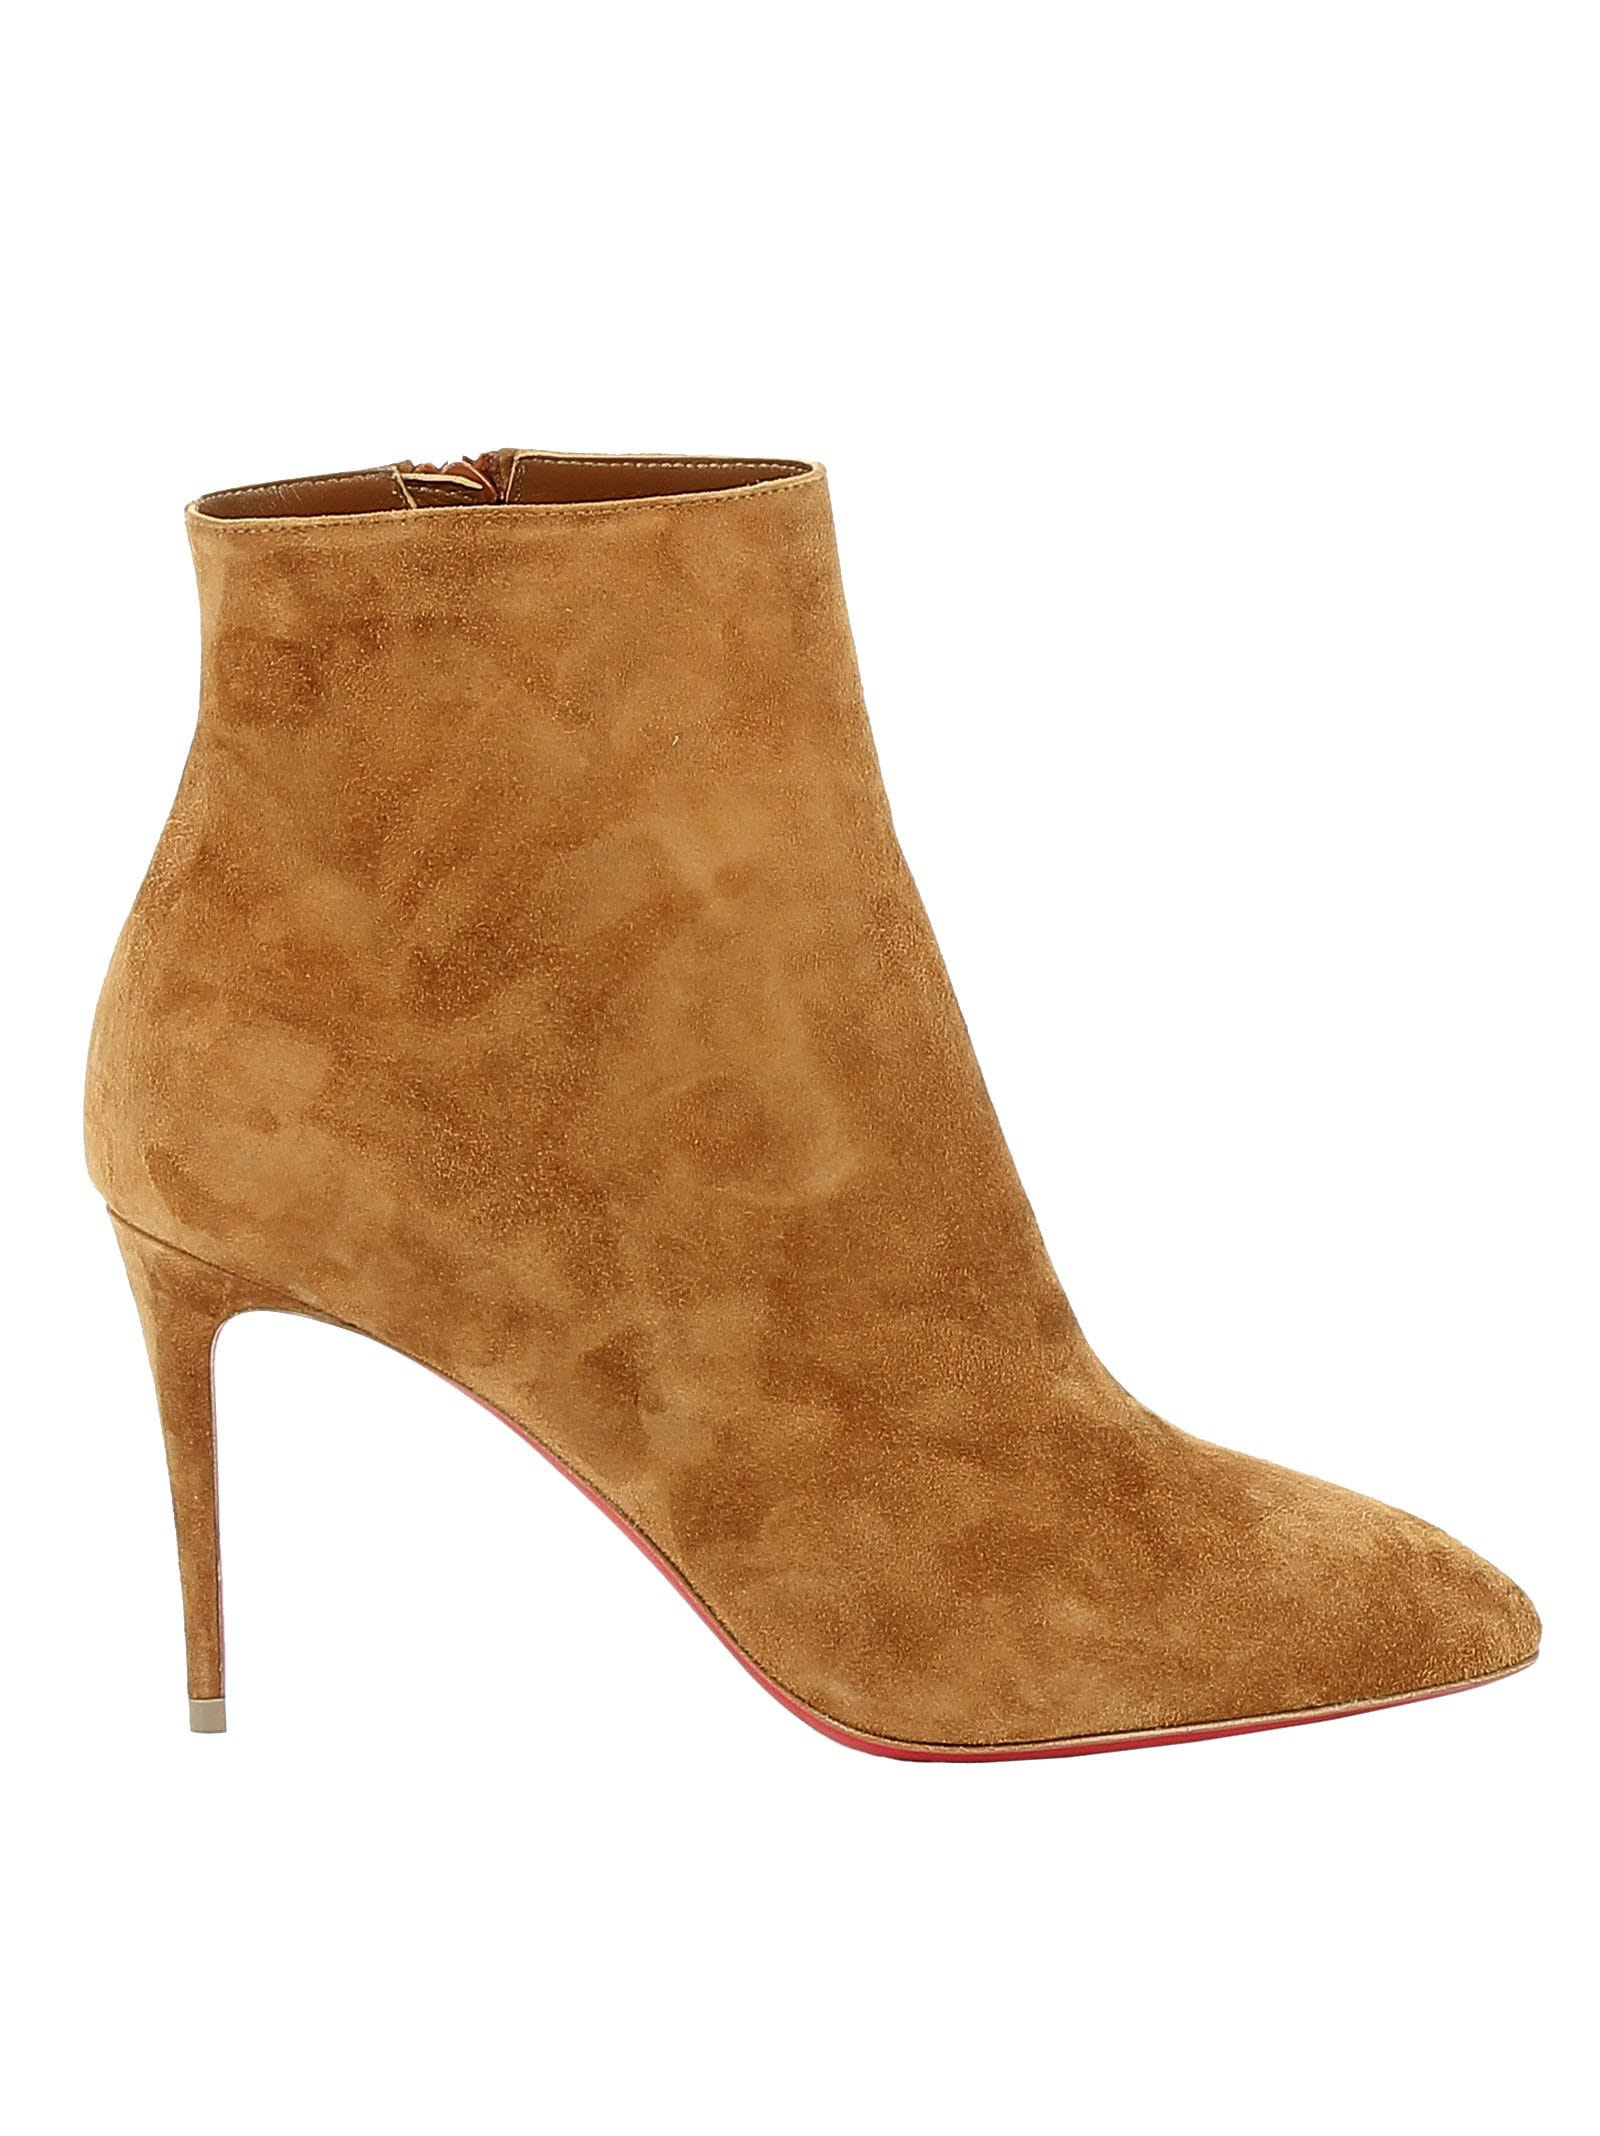 Christian Louboutin Cuoio Suede Ankle Boots